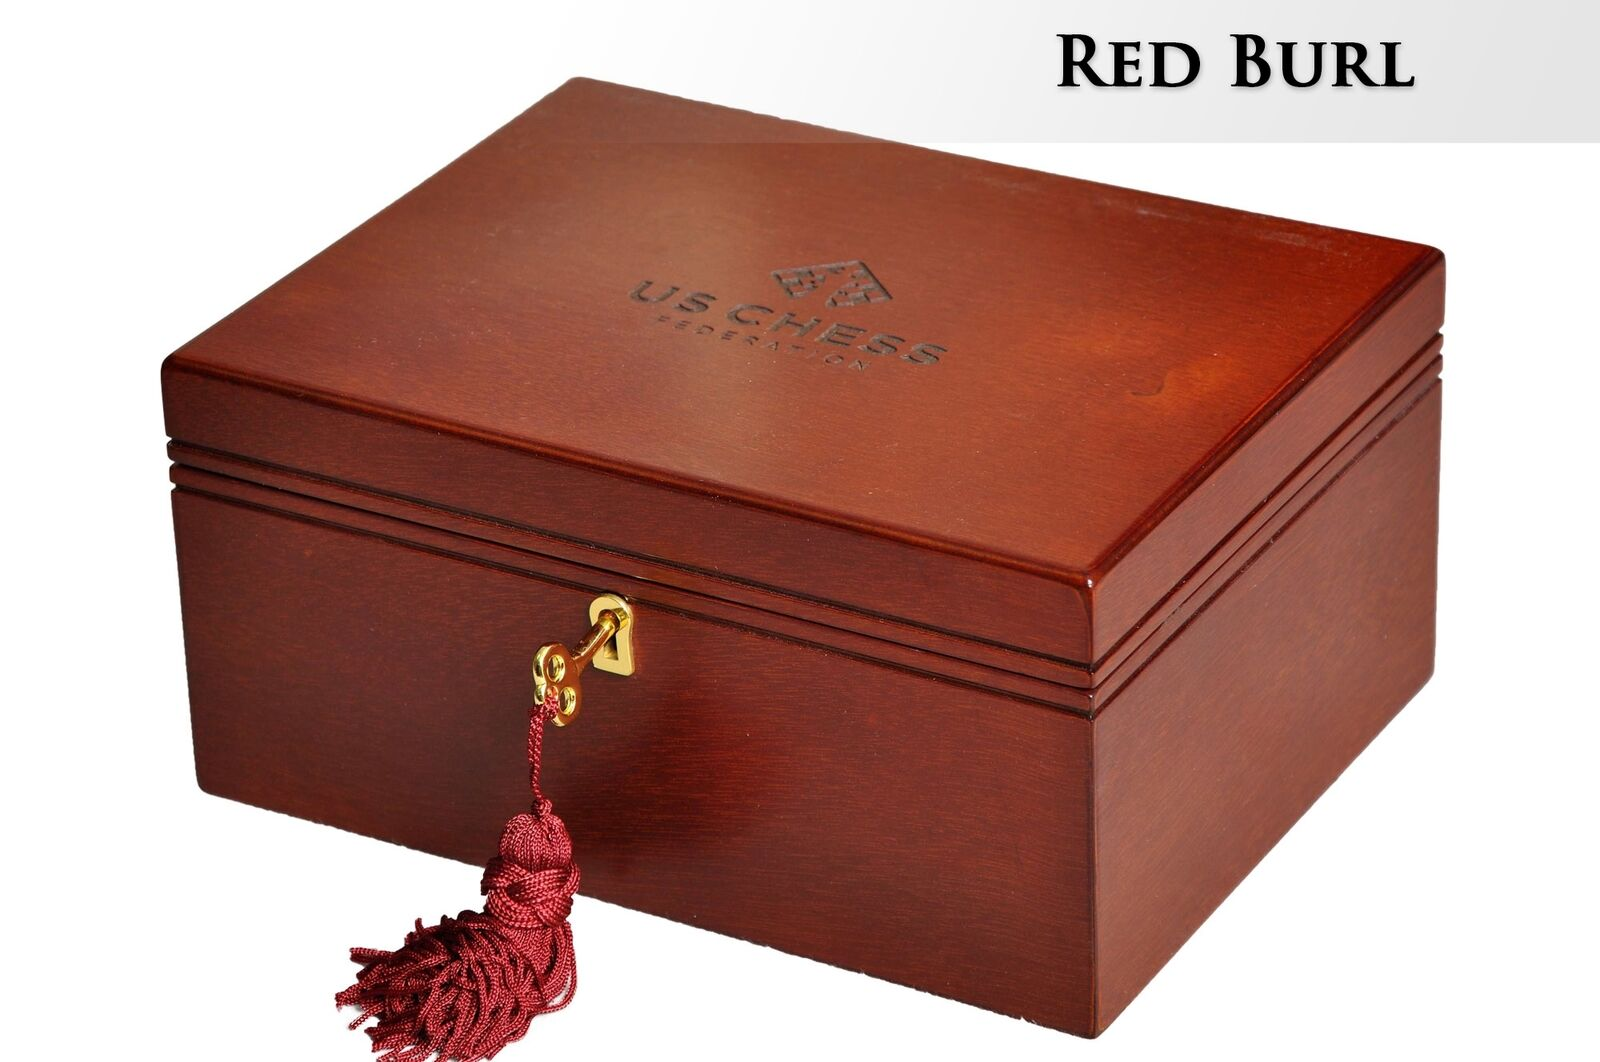 Premium Chess Box - rosso Burl - With US CHESS Logo